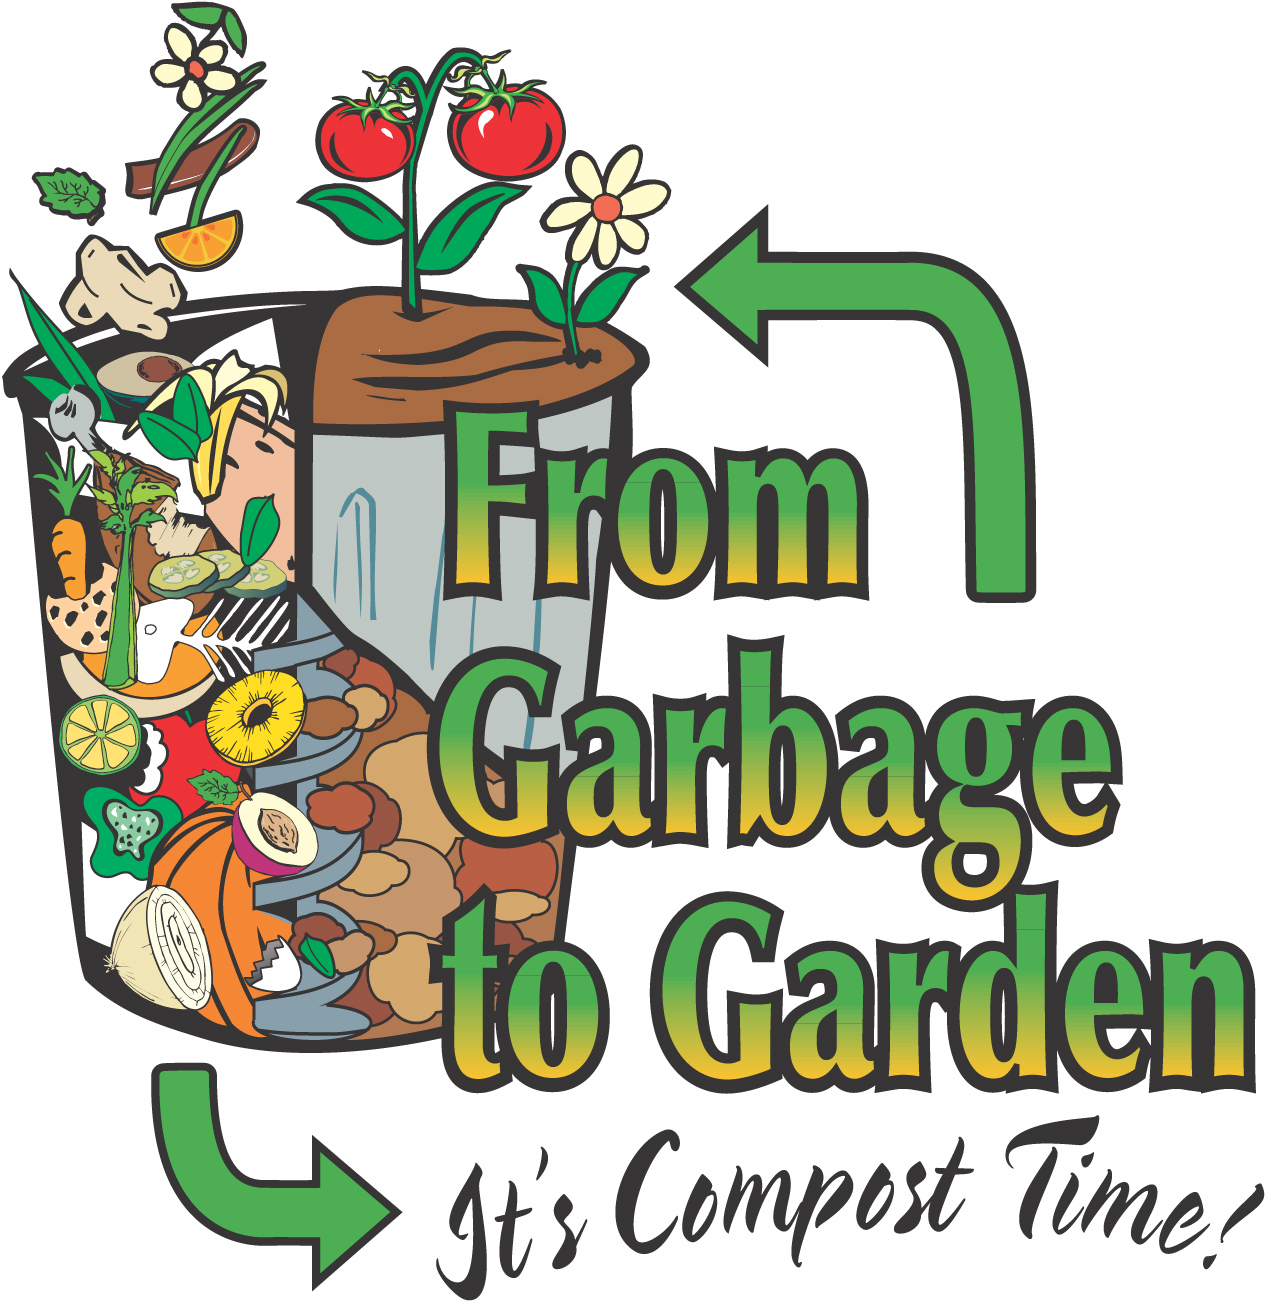 Composting 101 What Is Compost: Composting 101: What Are The Benefits To Composting?